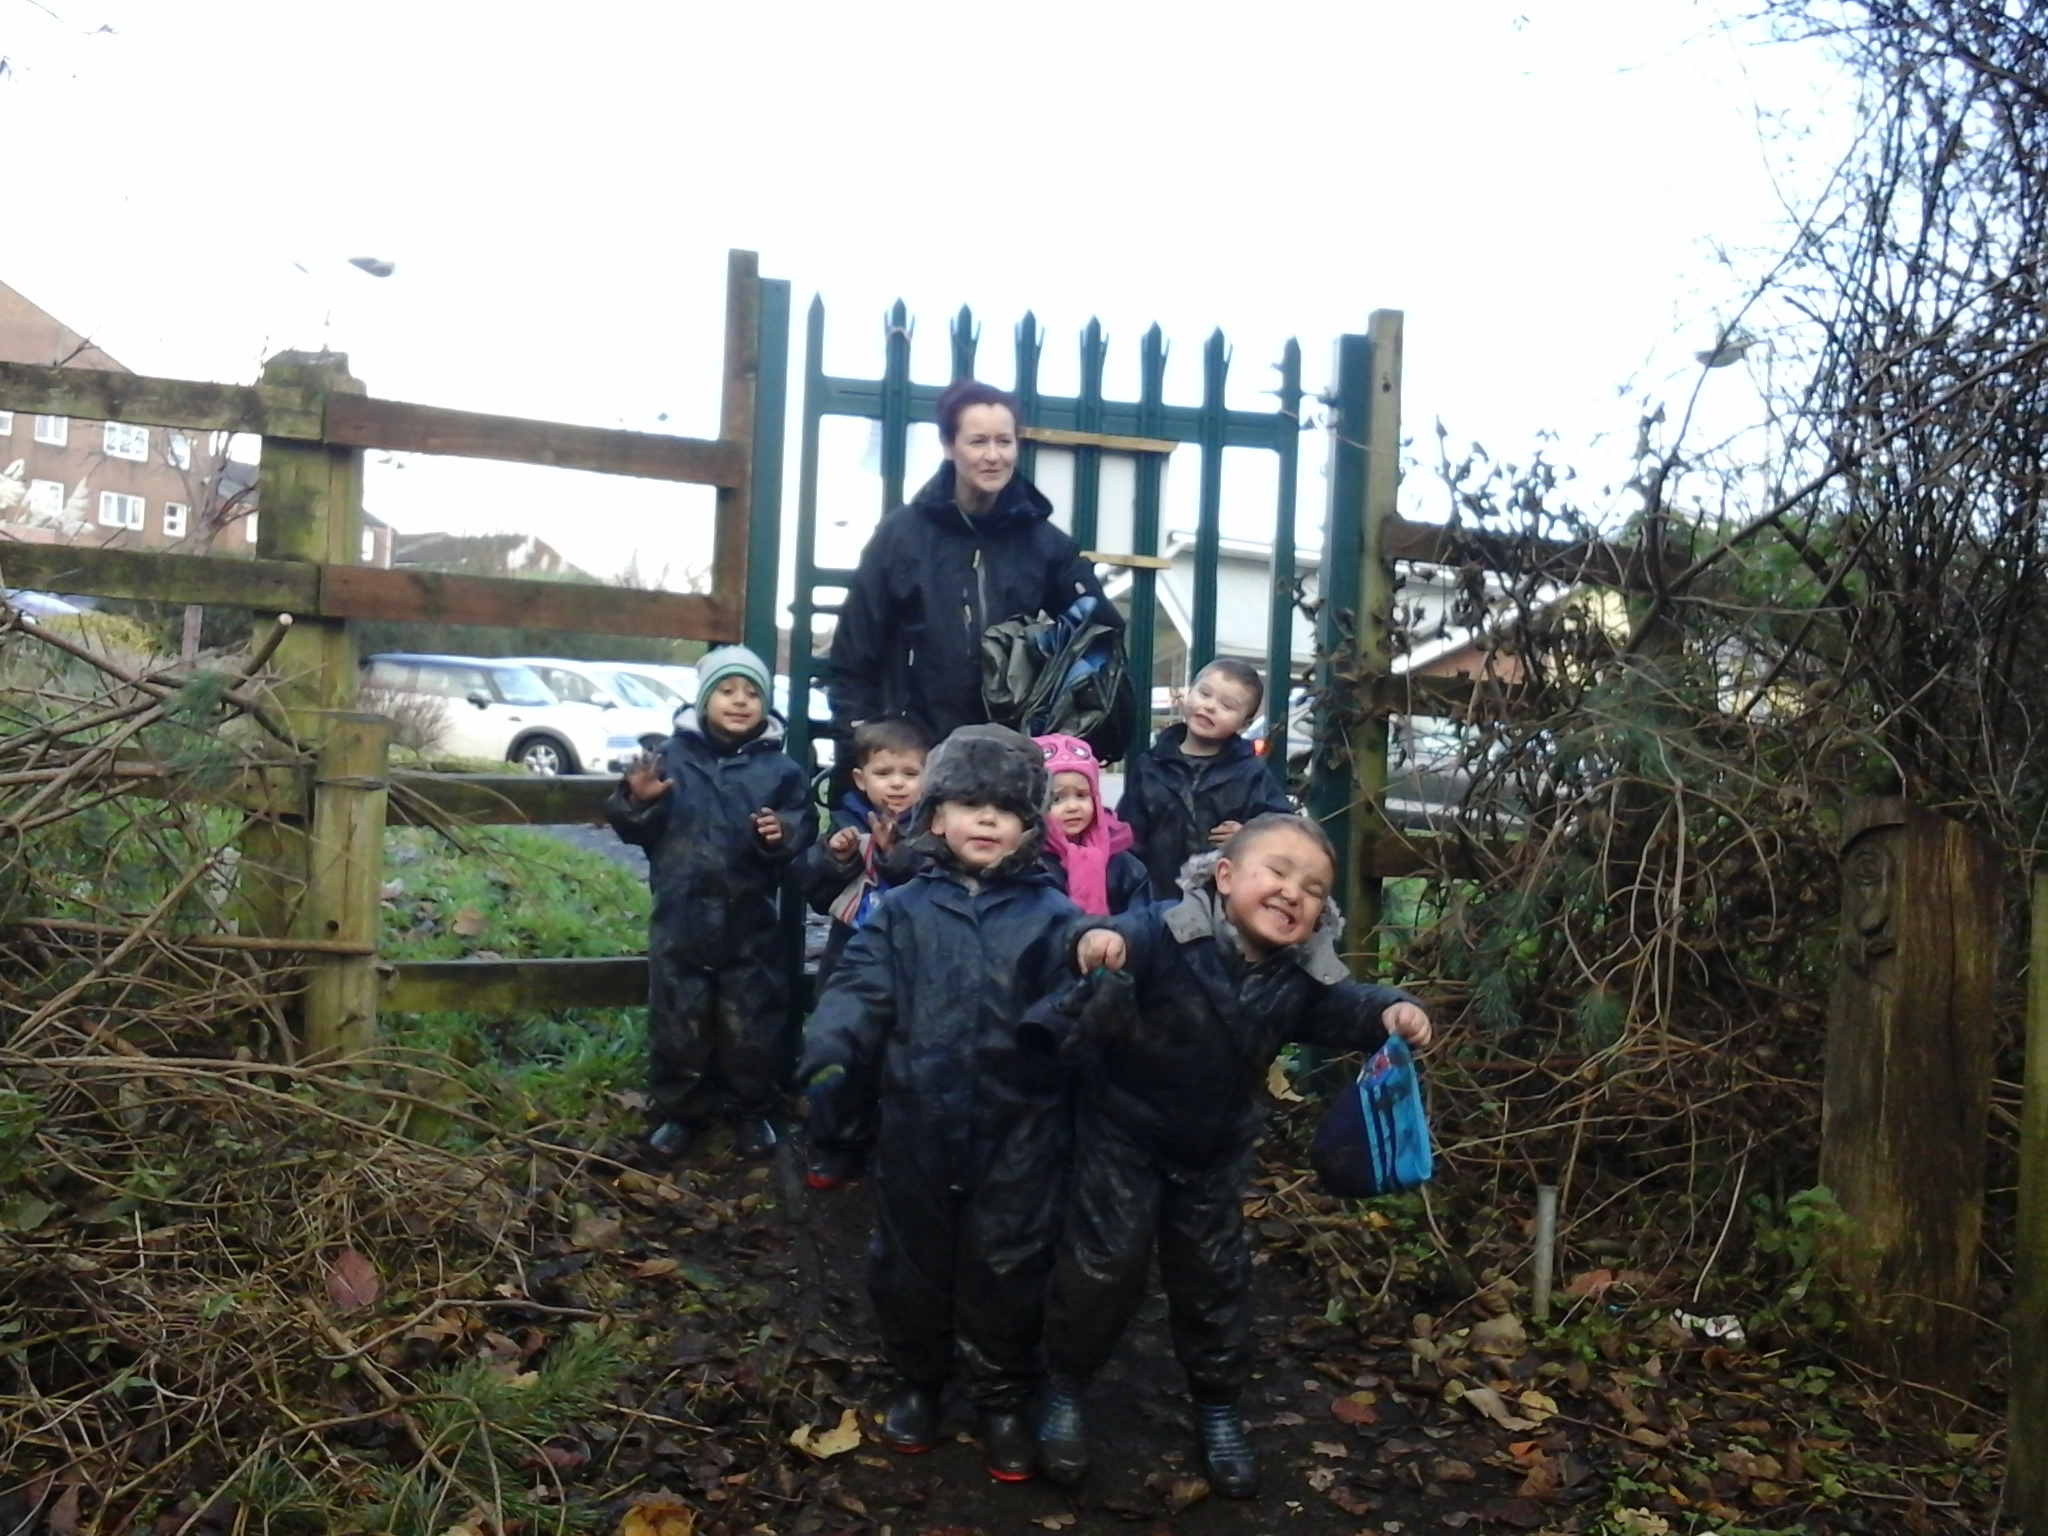 BCFC WCFC Forest School 27.11 (86)